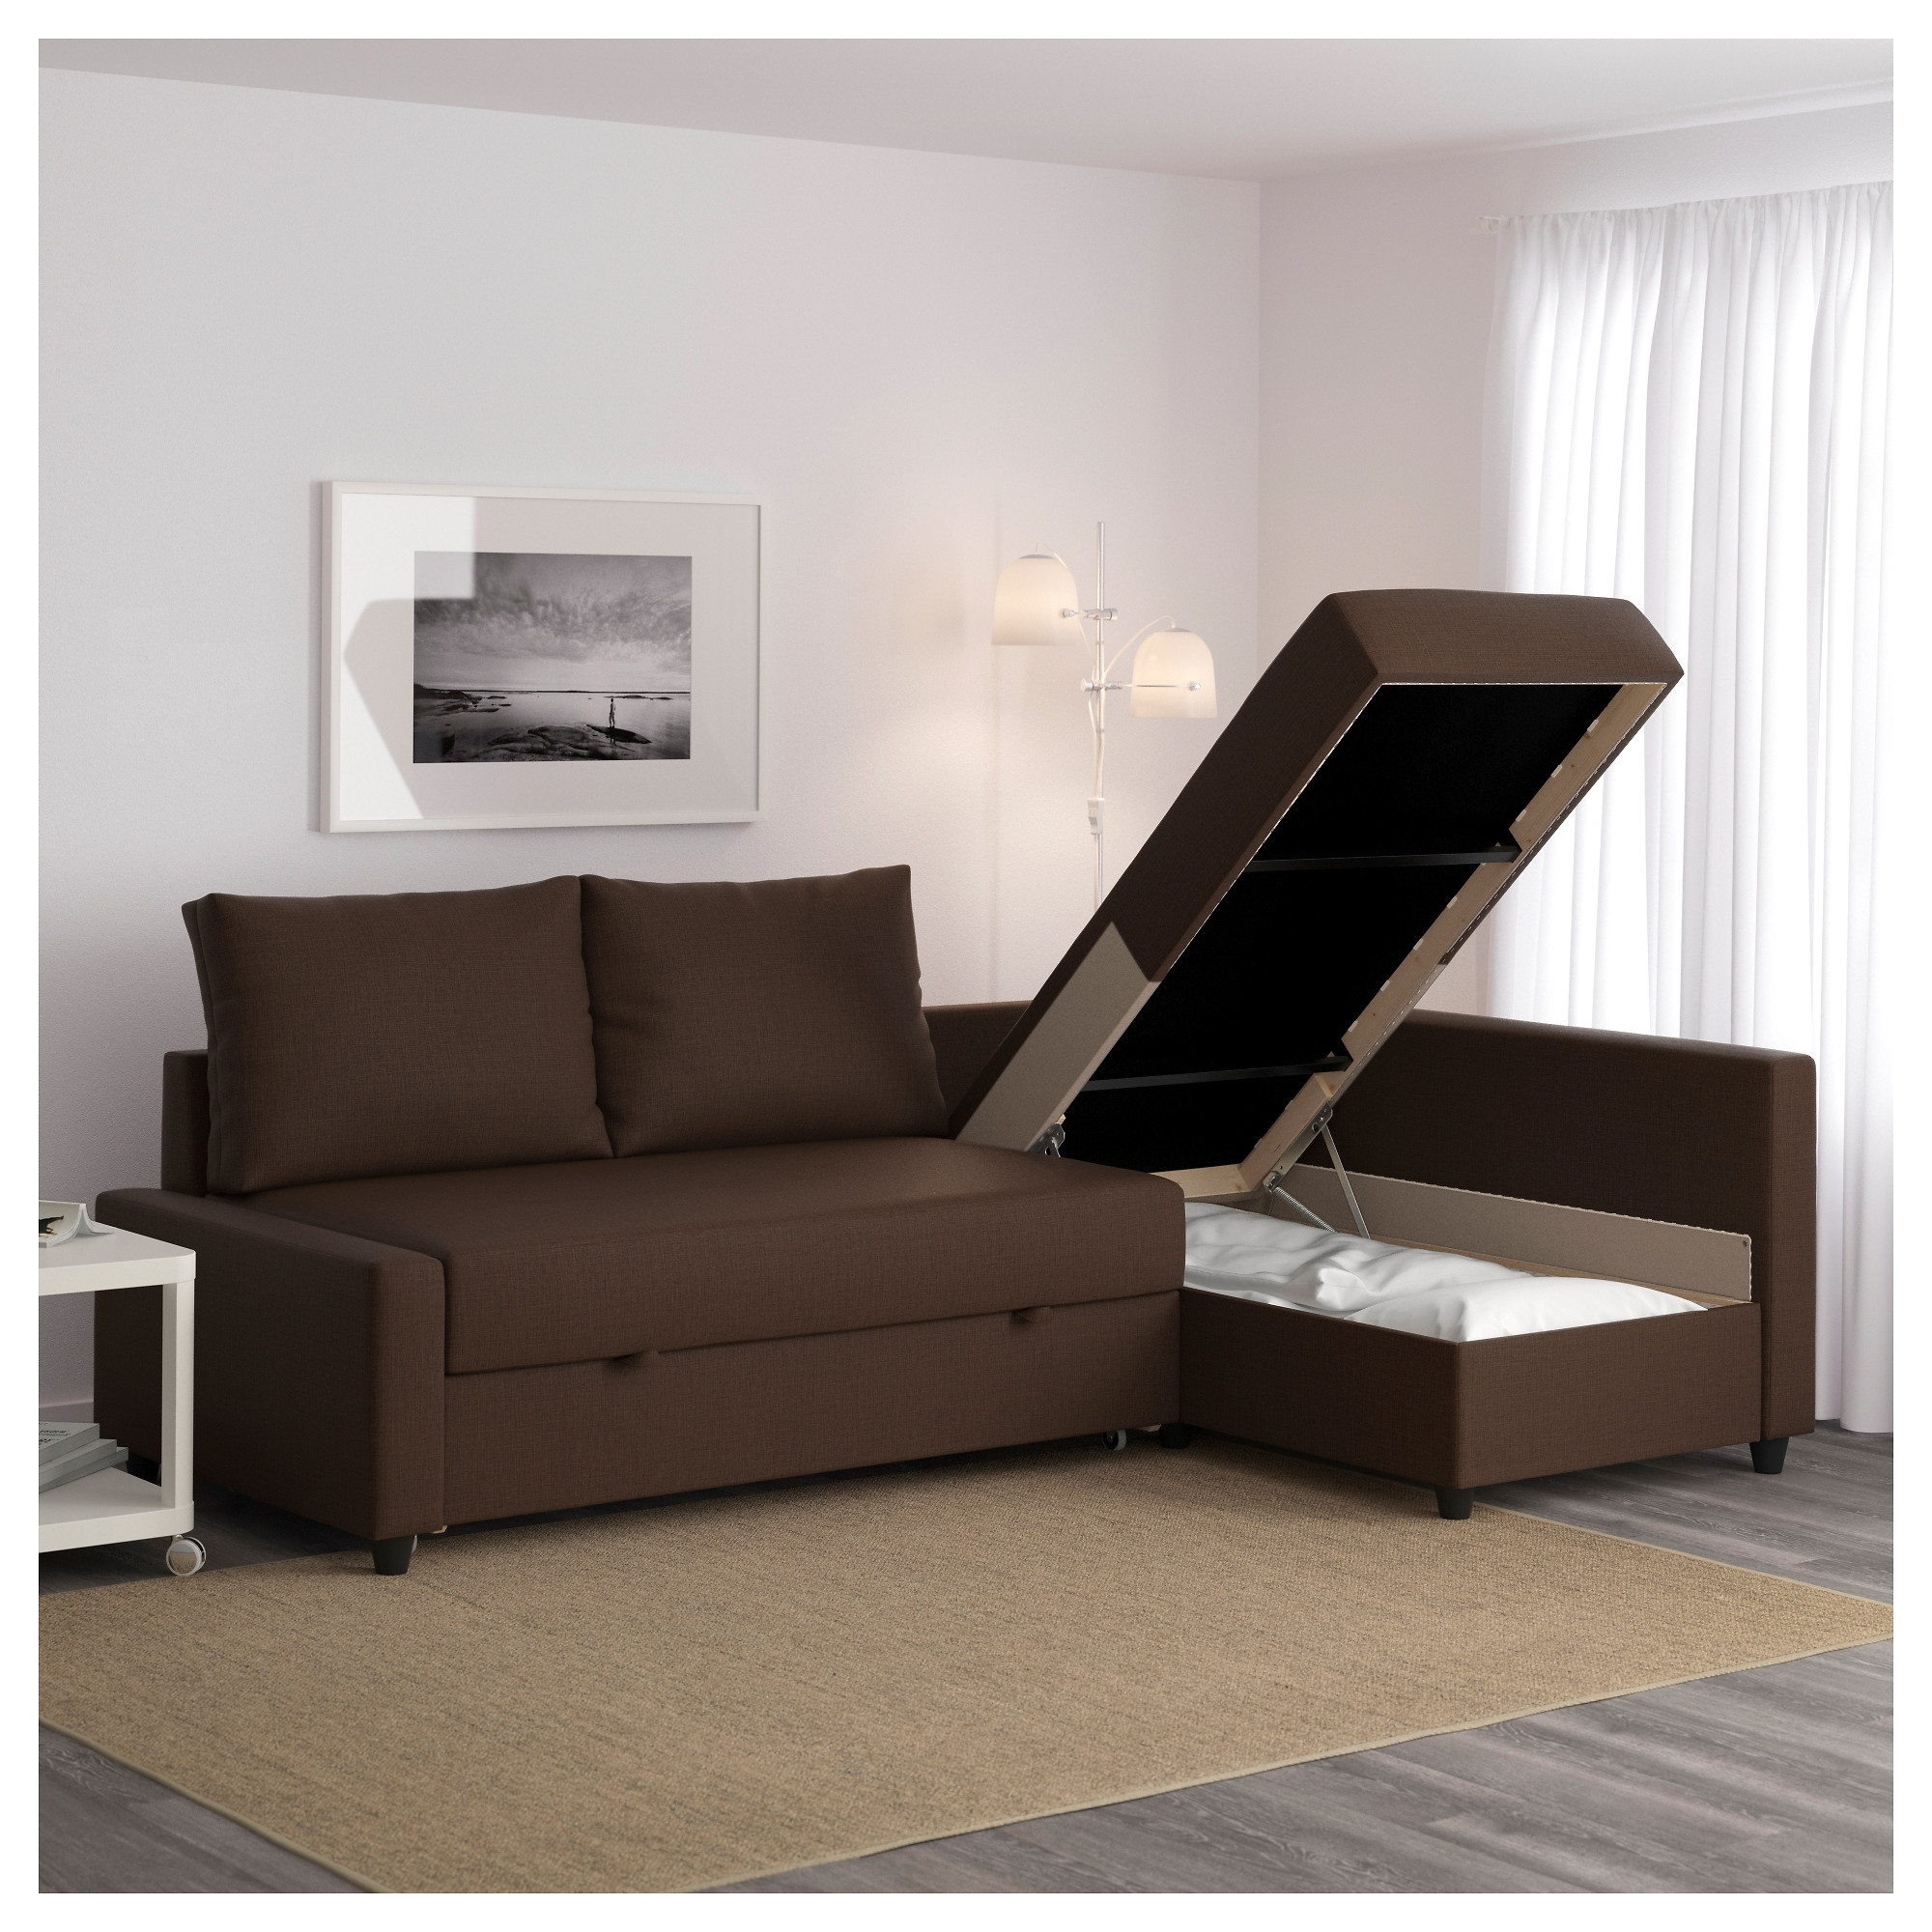 Friheten Corner Sofa Bed With Storage Skiftebo Brown – Ikea For Preferred Ikea Corner Sofas With Storage (View 4 of 20)